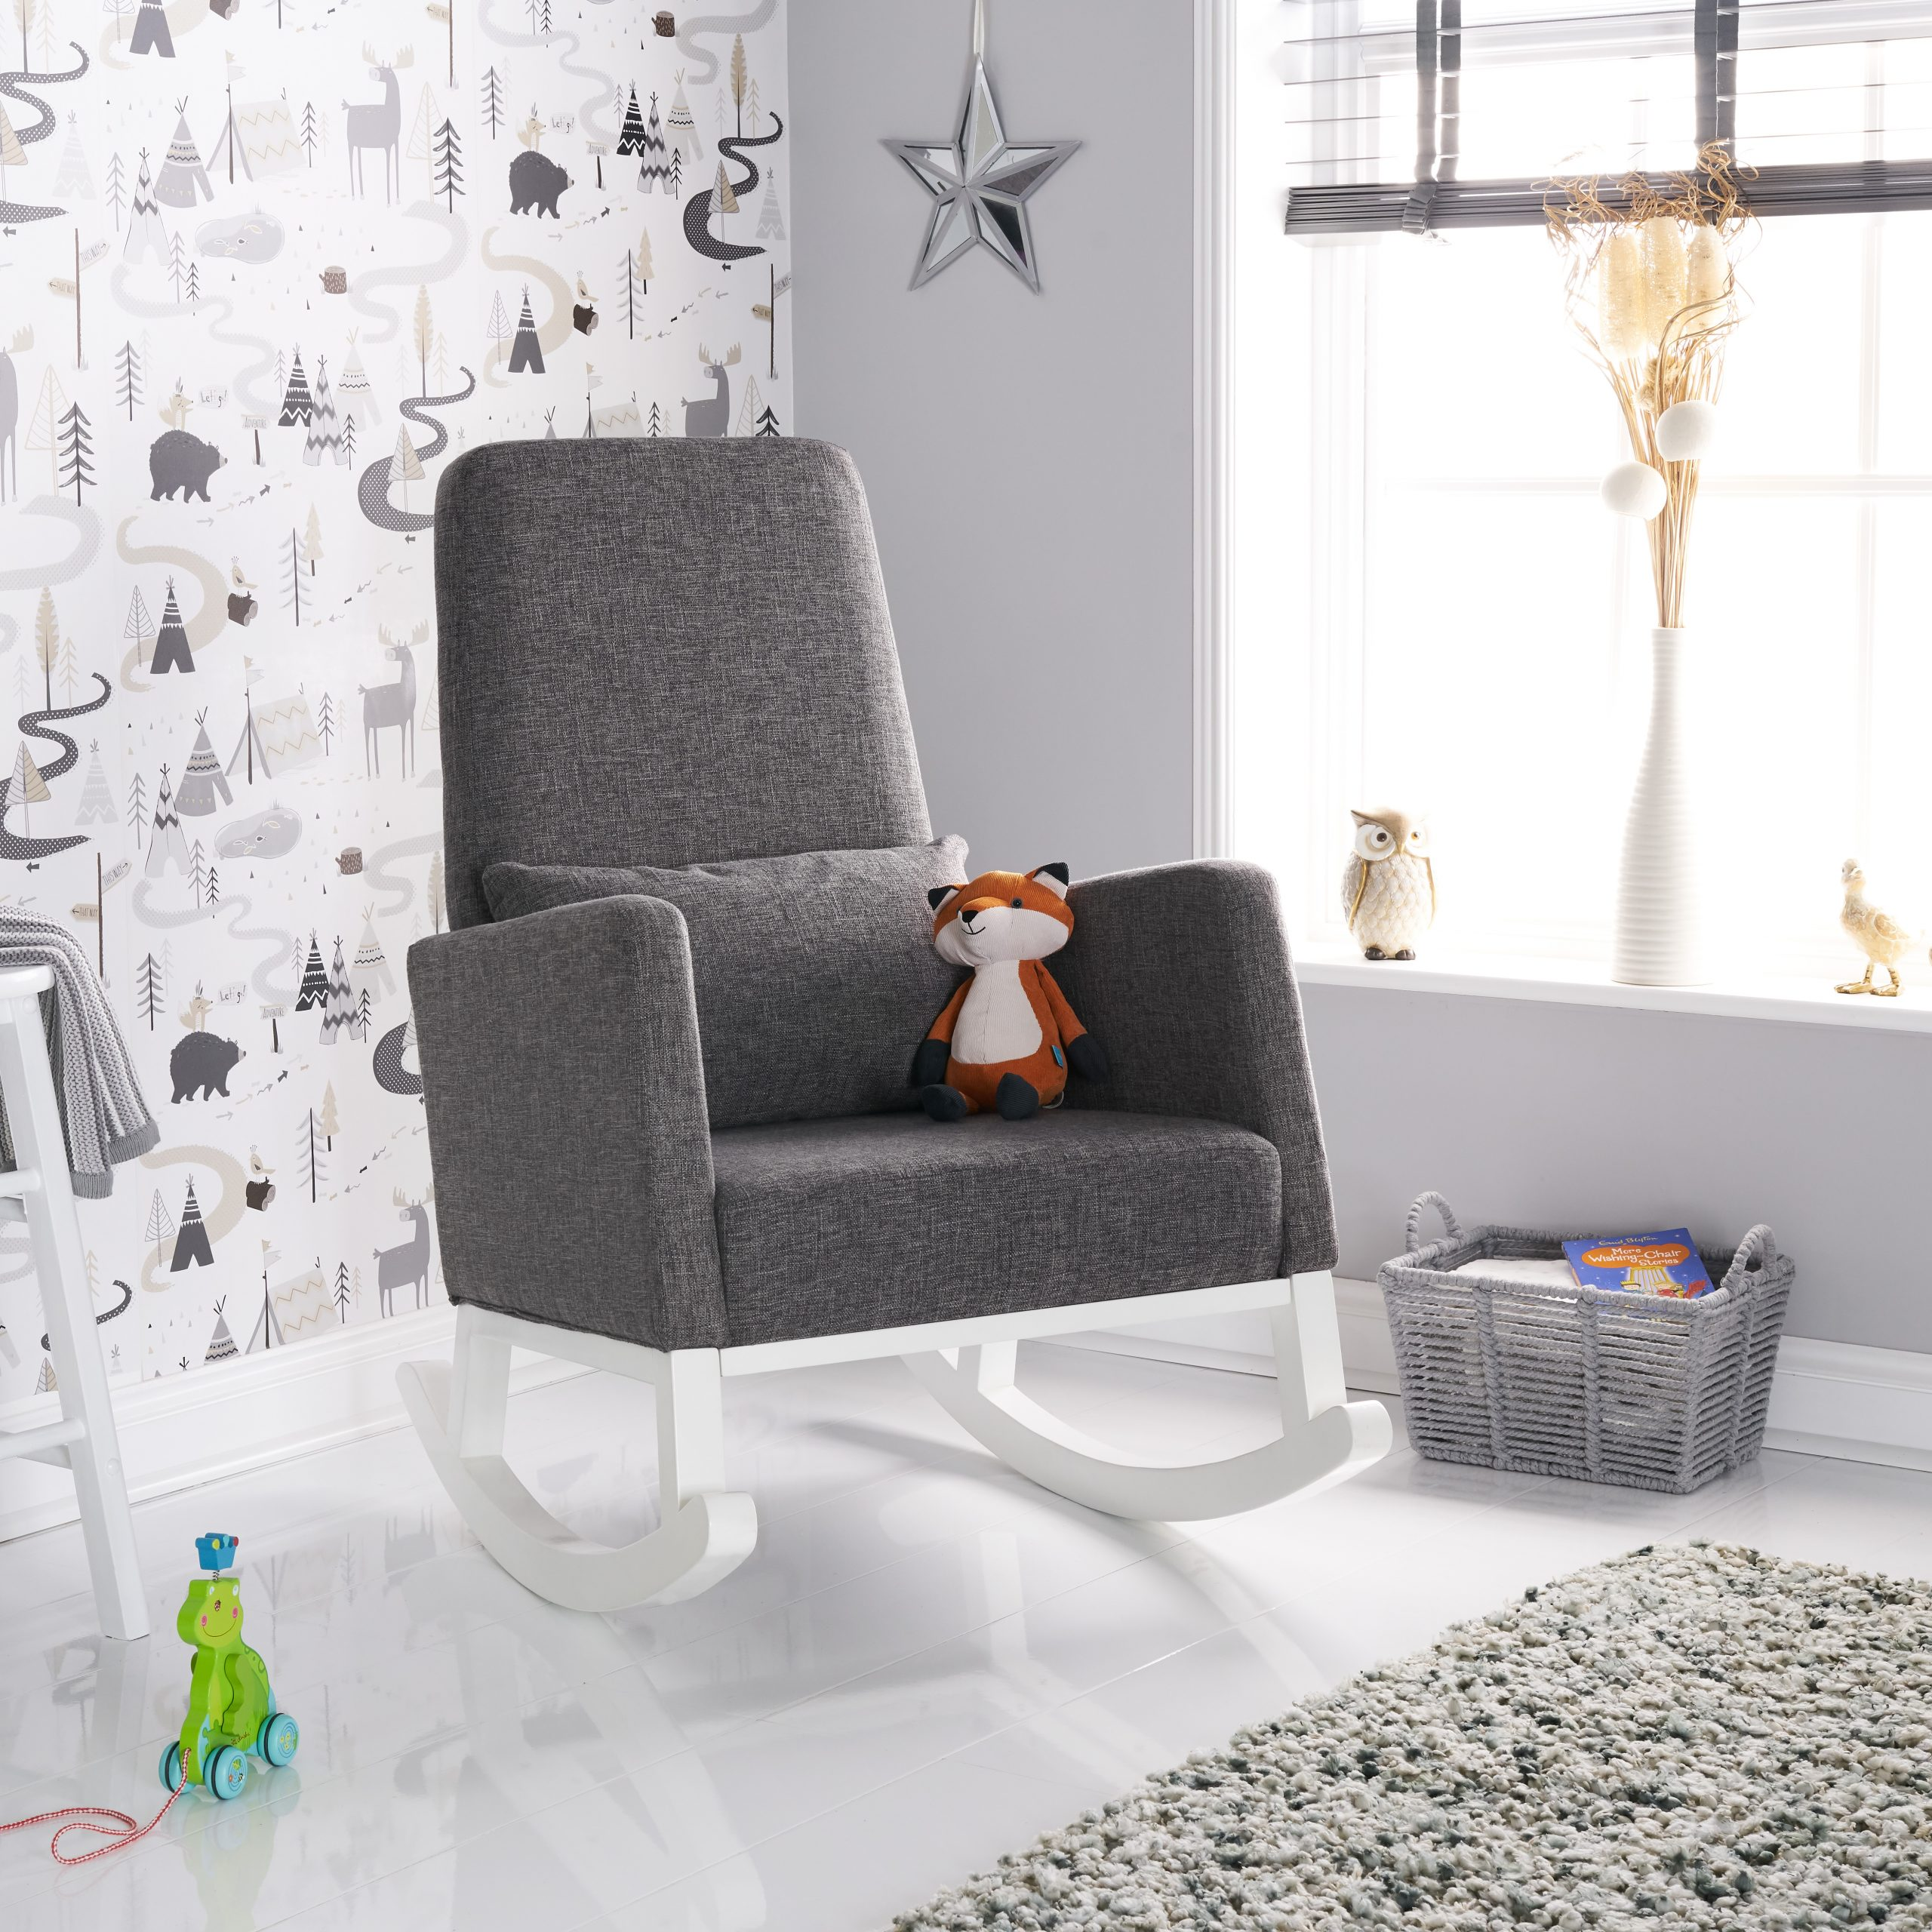 High Back Rocking Chair White with Grey Cushion